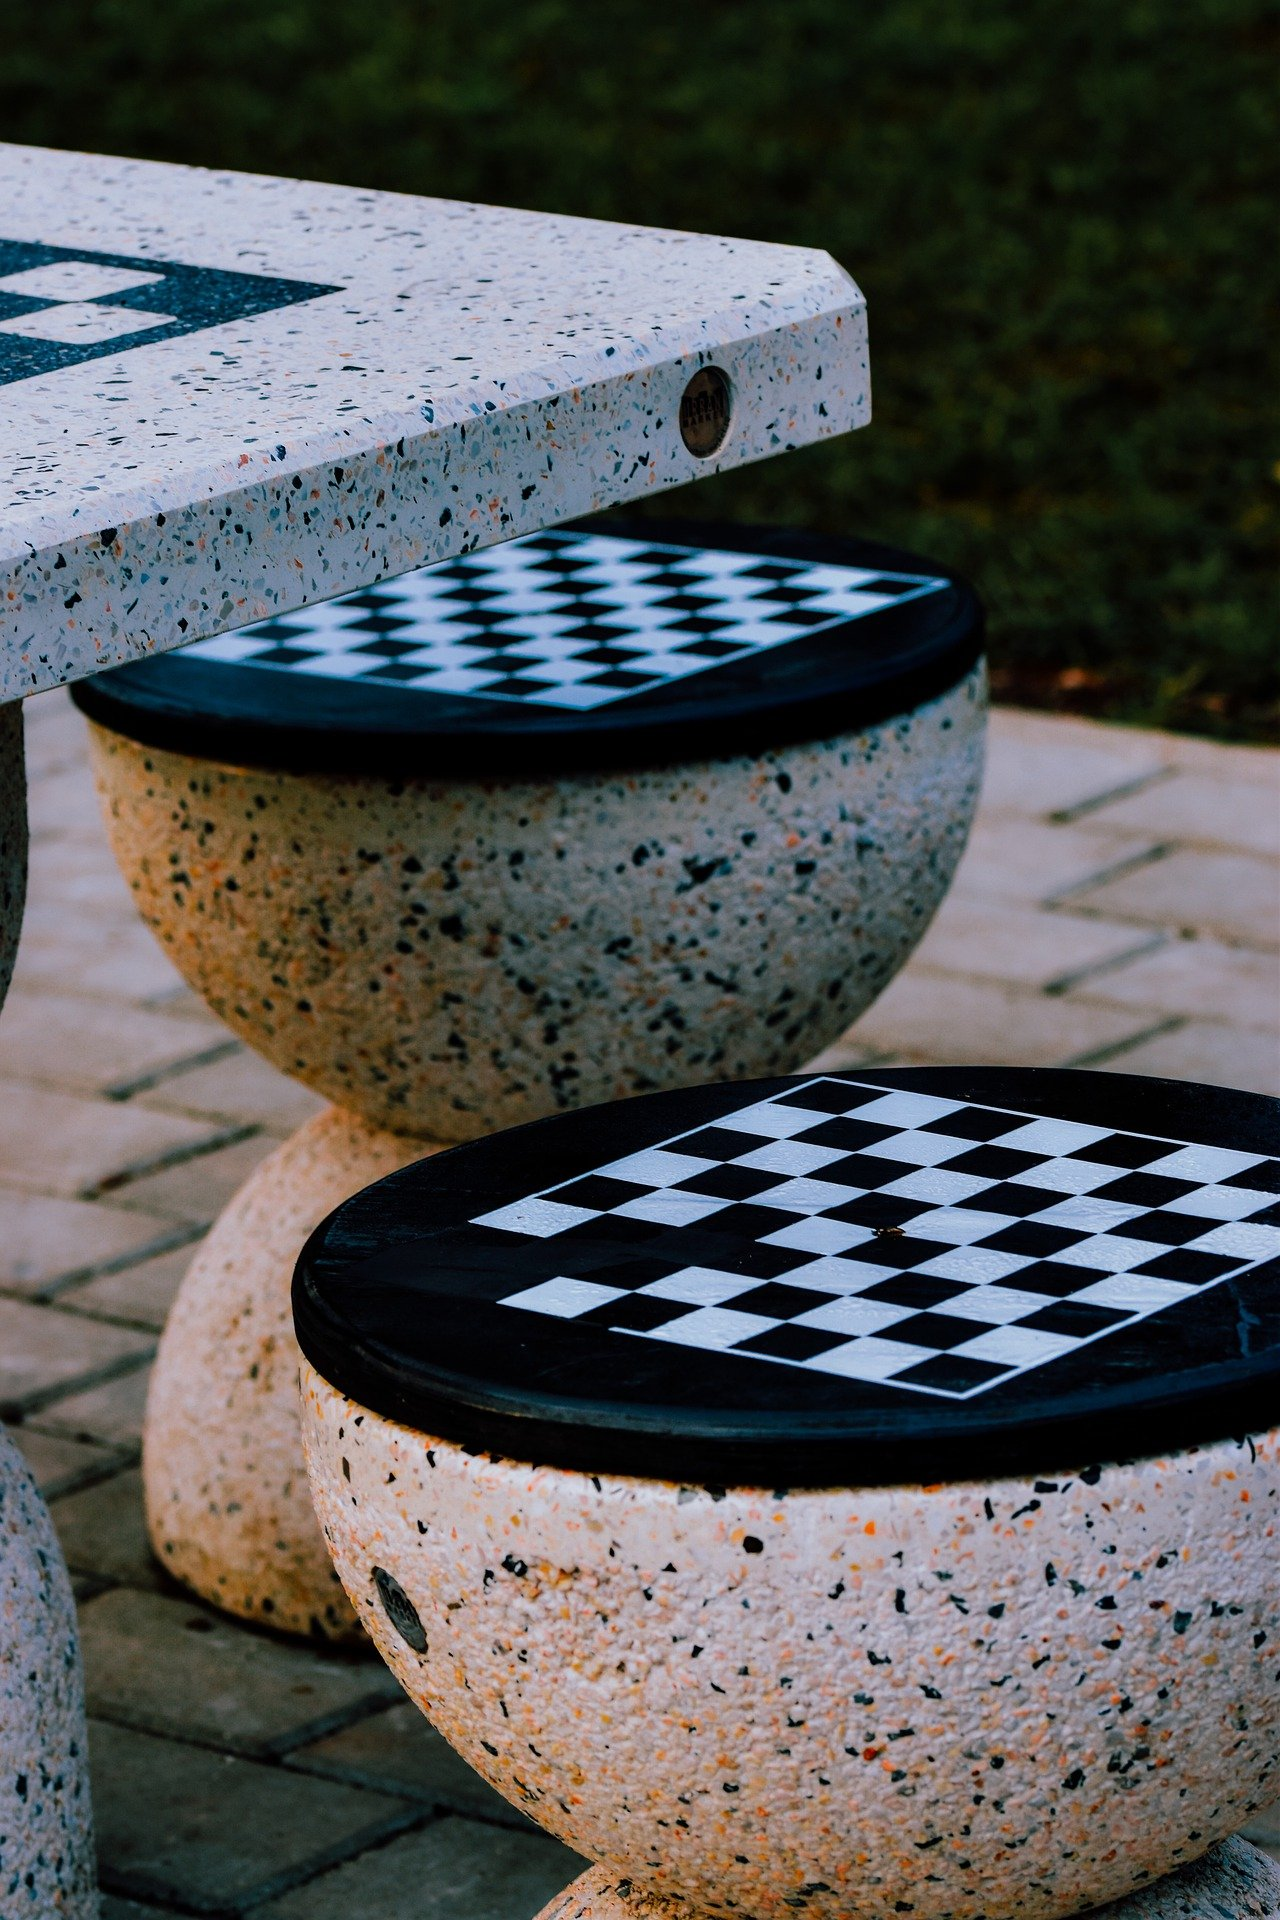 Pictured - A chess table for competitions   Source: Pixabay